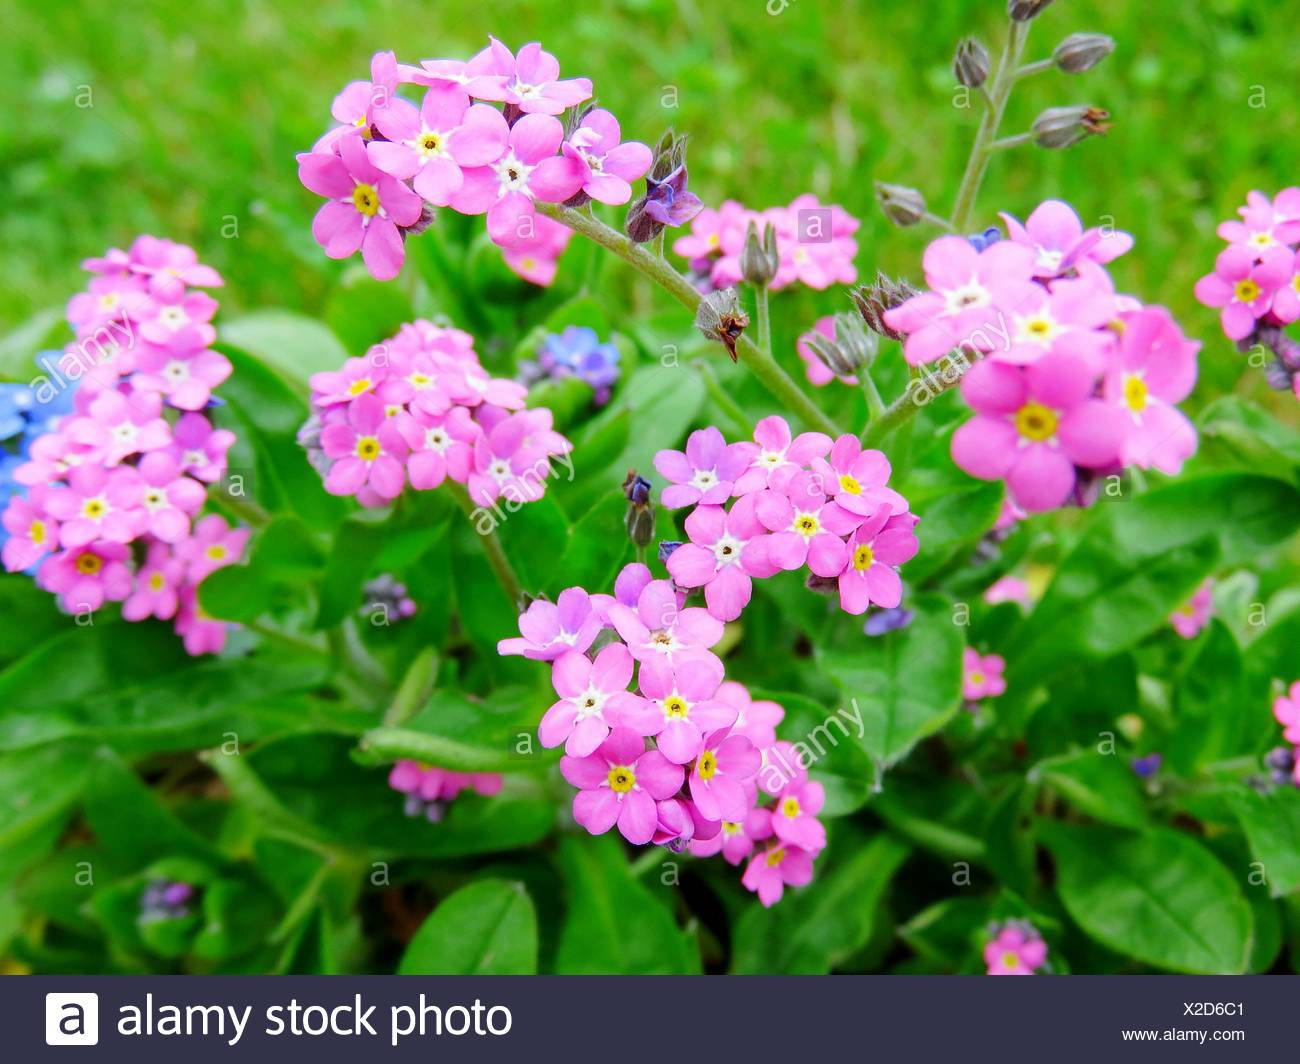 Close Up View Of Forget Me Not Pink Flowers Stock Photo 276885617